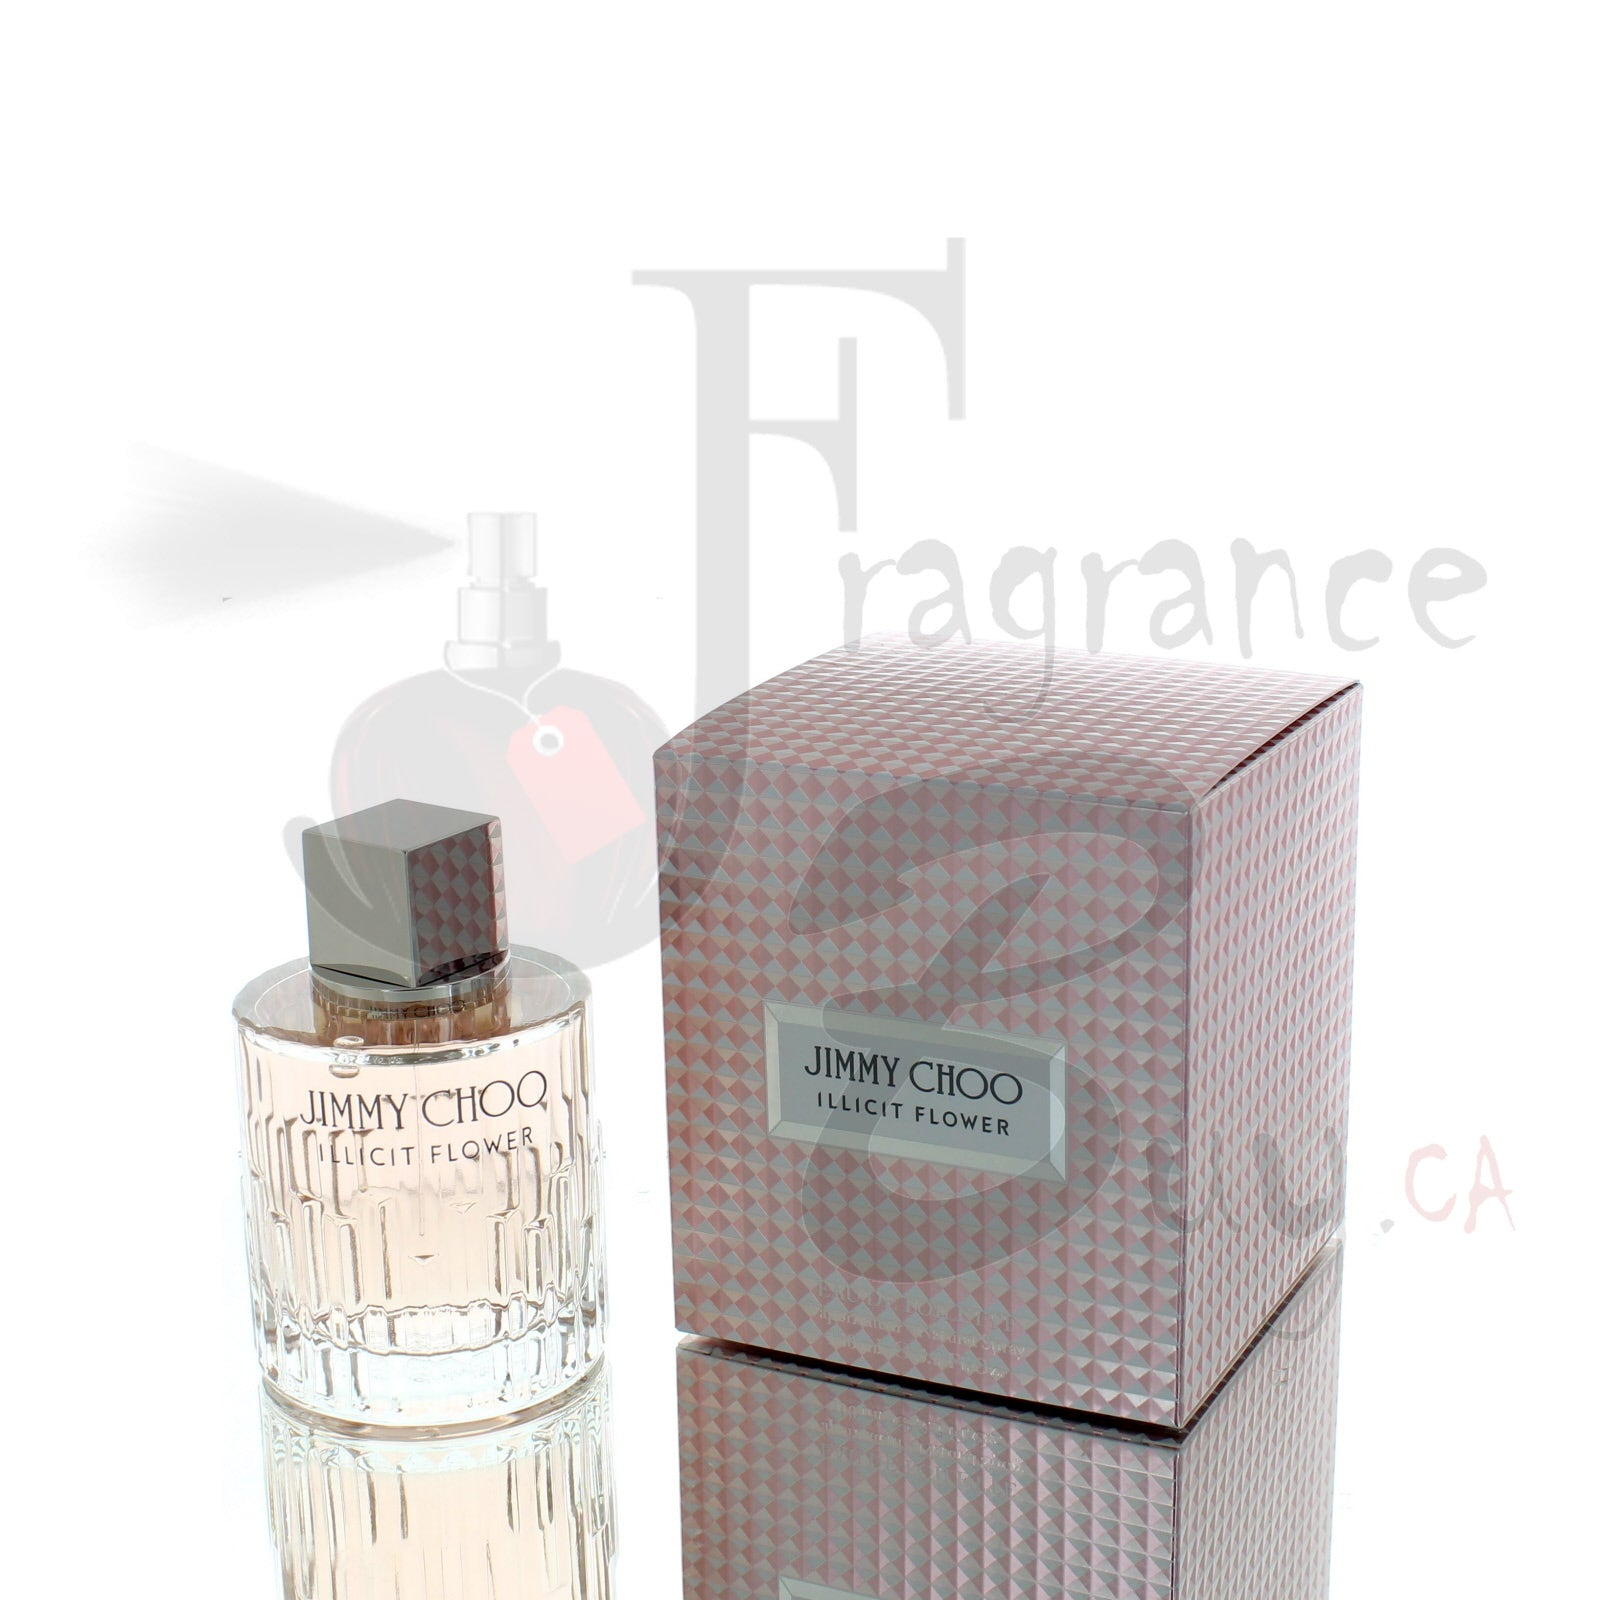 Jimmy Choo Illicit Flower For Woman